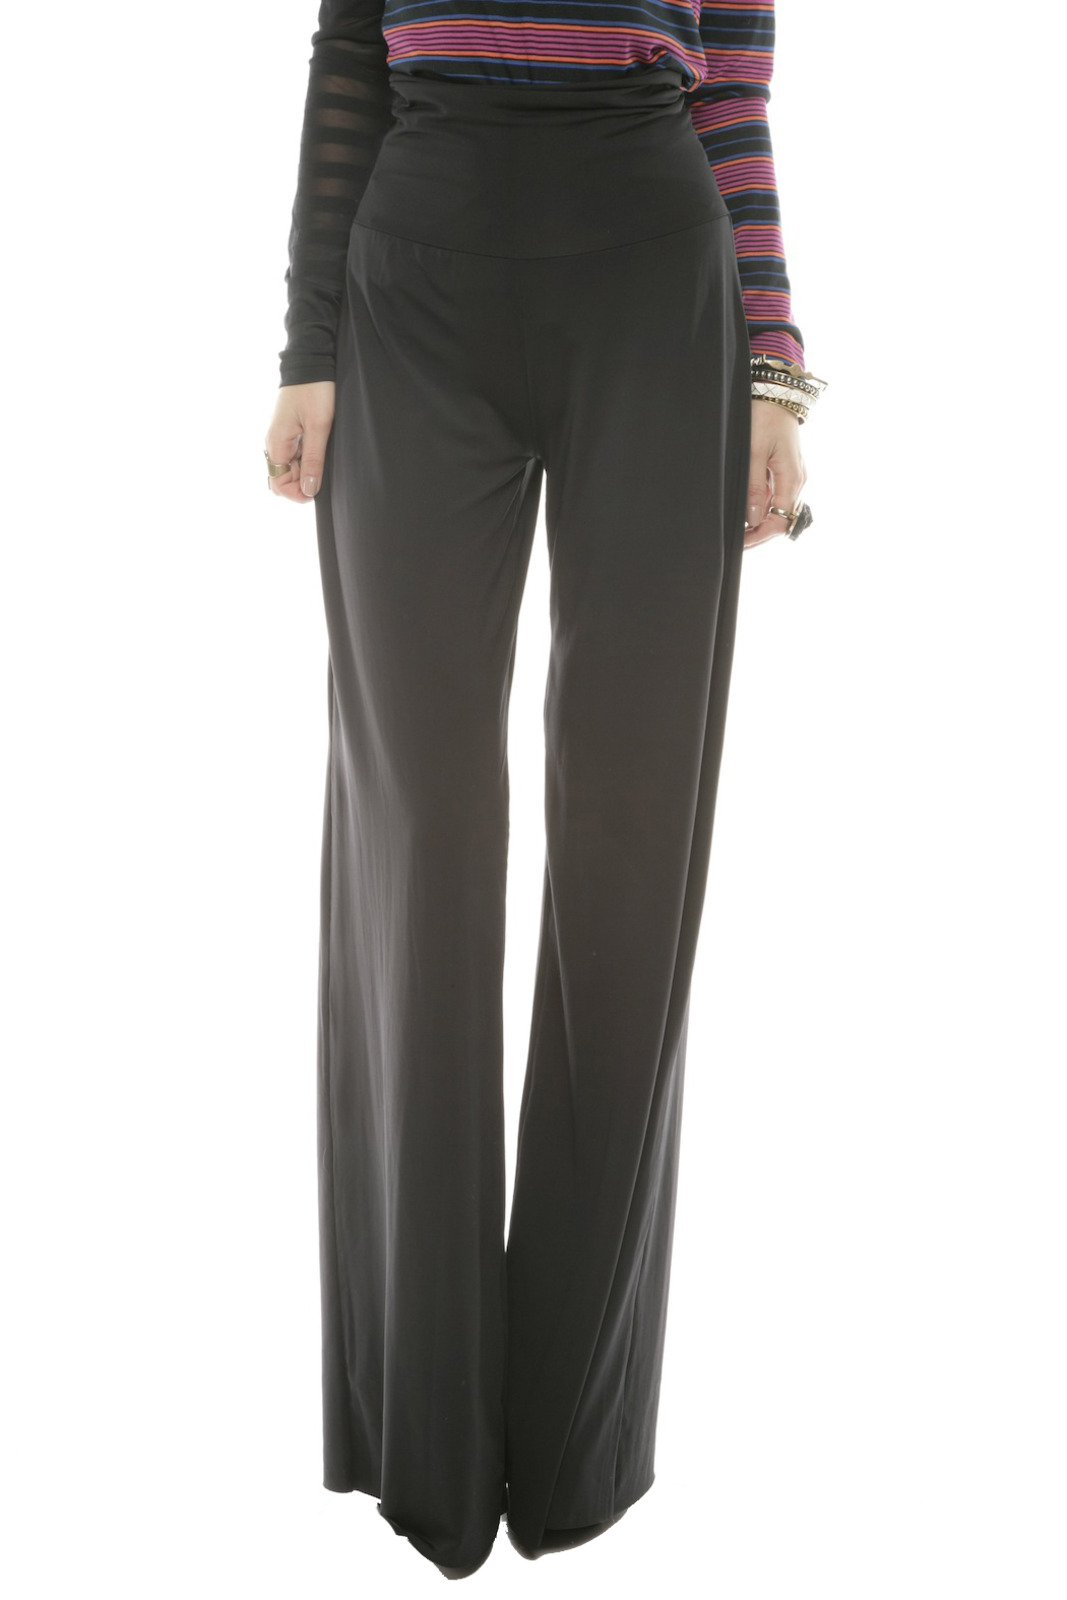 PilyQ Soft Black Pants from Miami by Neptunes — Shoptiques